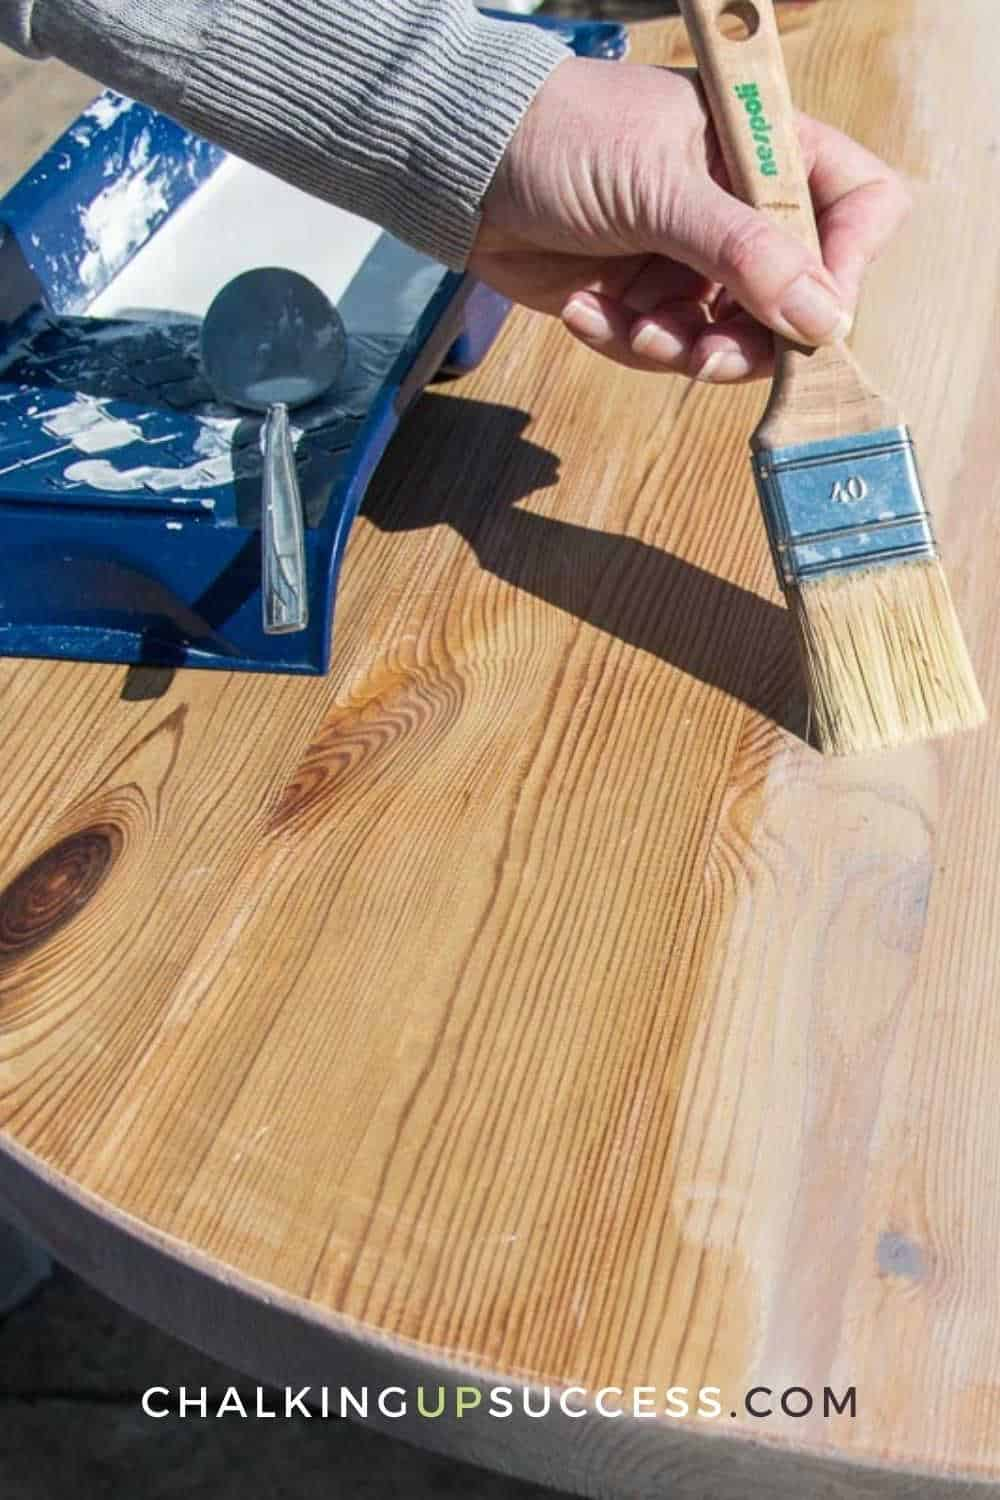 Save this pin to Pinterest. A person showing how to whitewash wood with chalk paint. Brushing on the chalk paint wash.